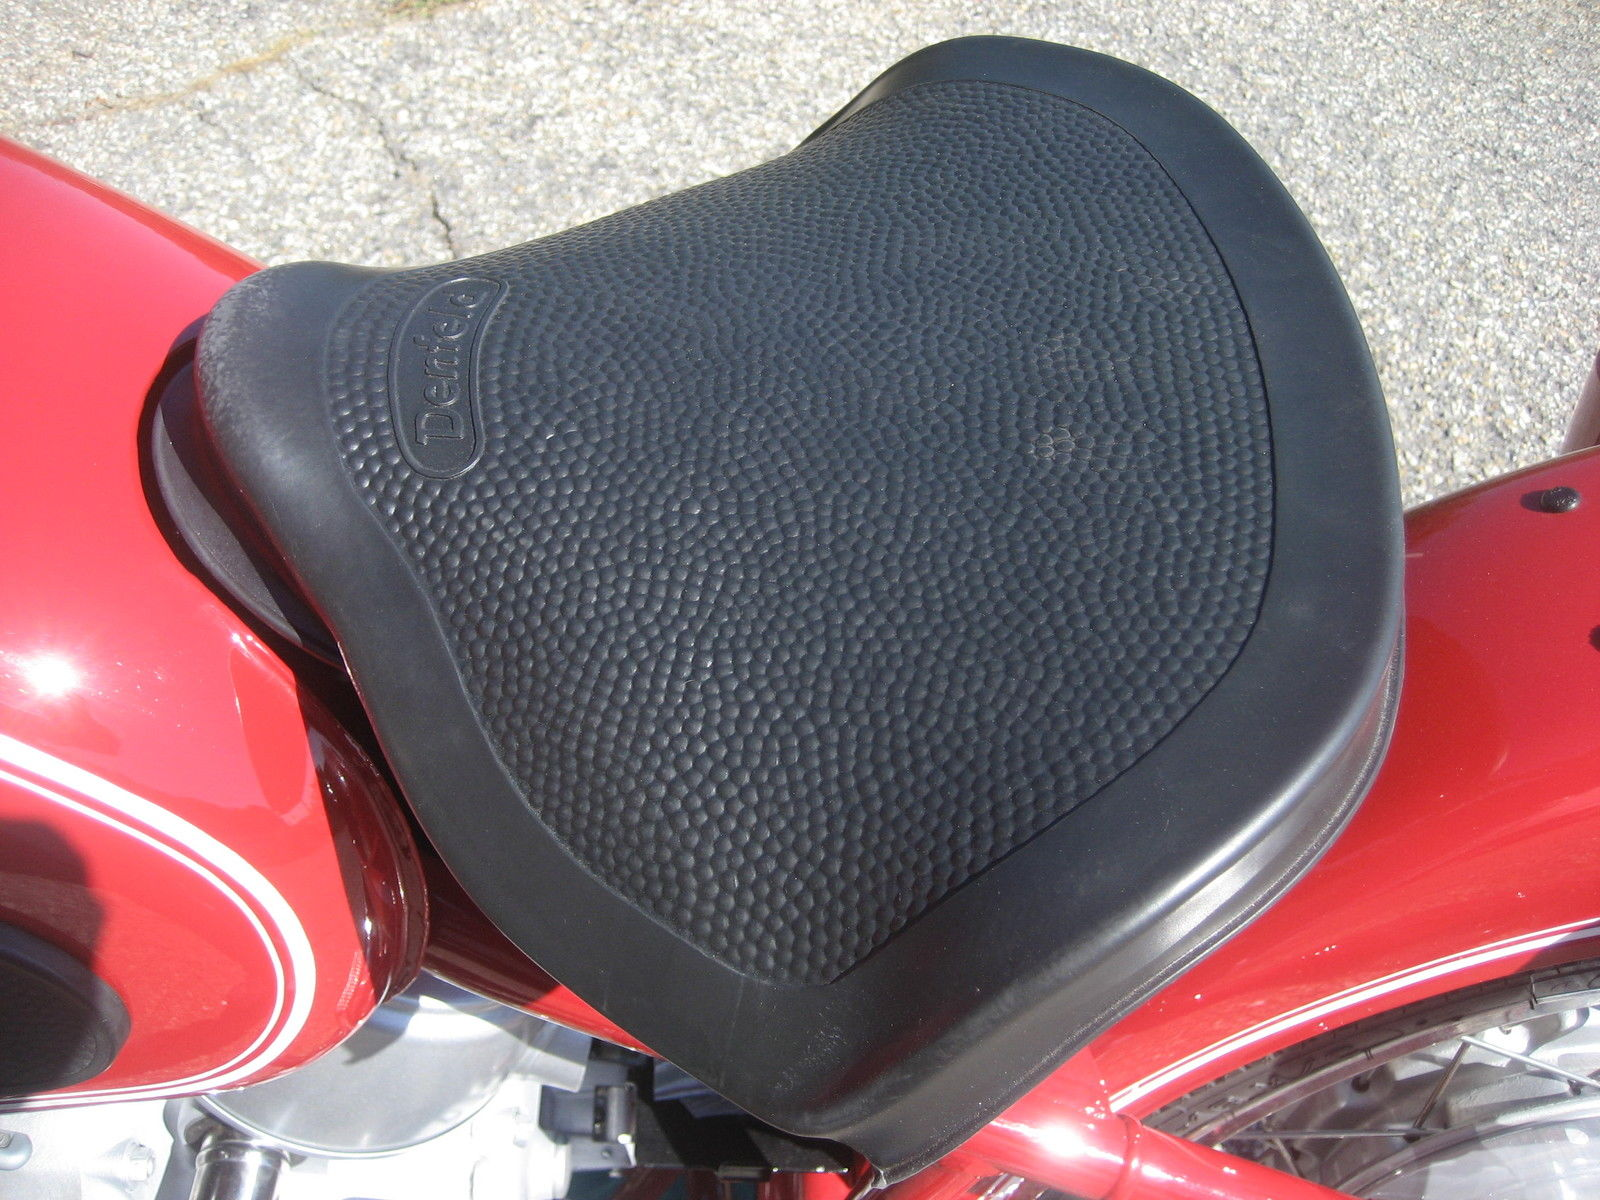 BMW R60 - 1969 - Replacement Seat.